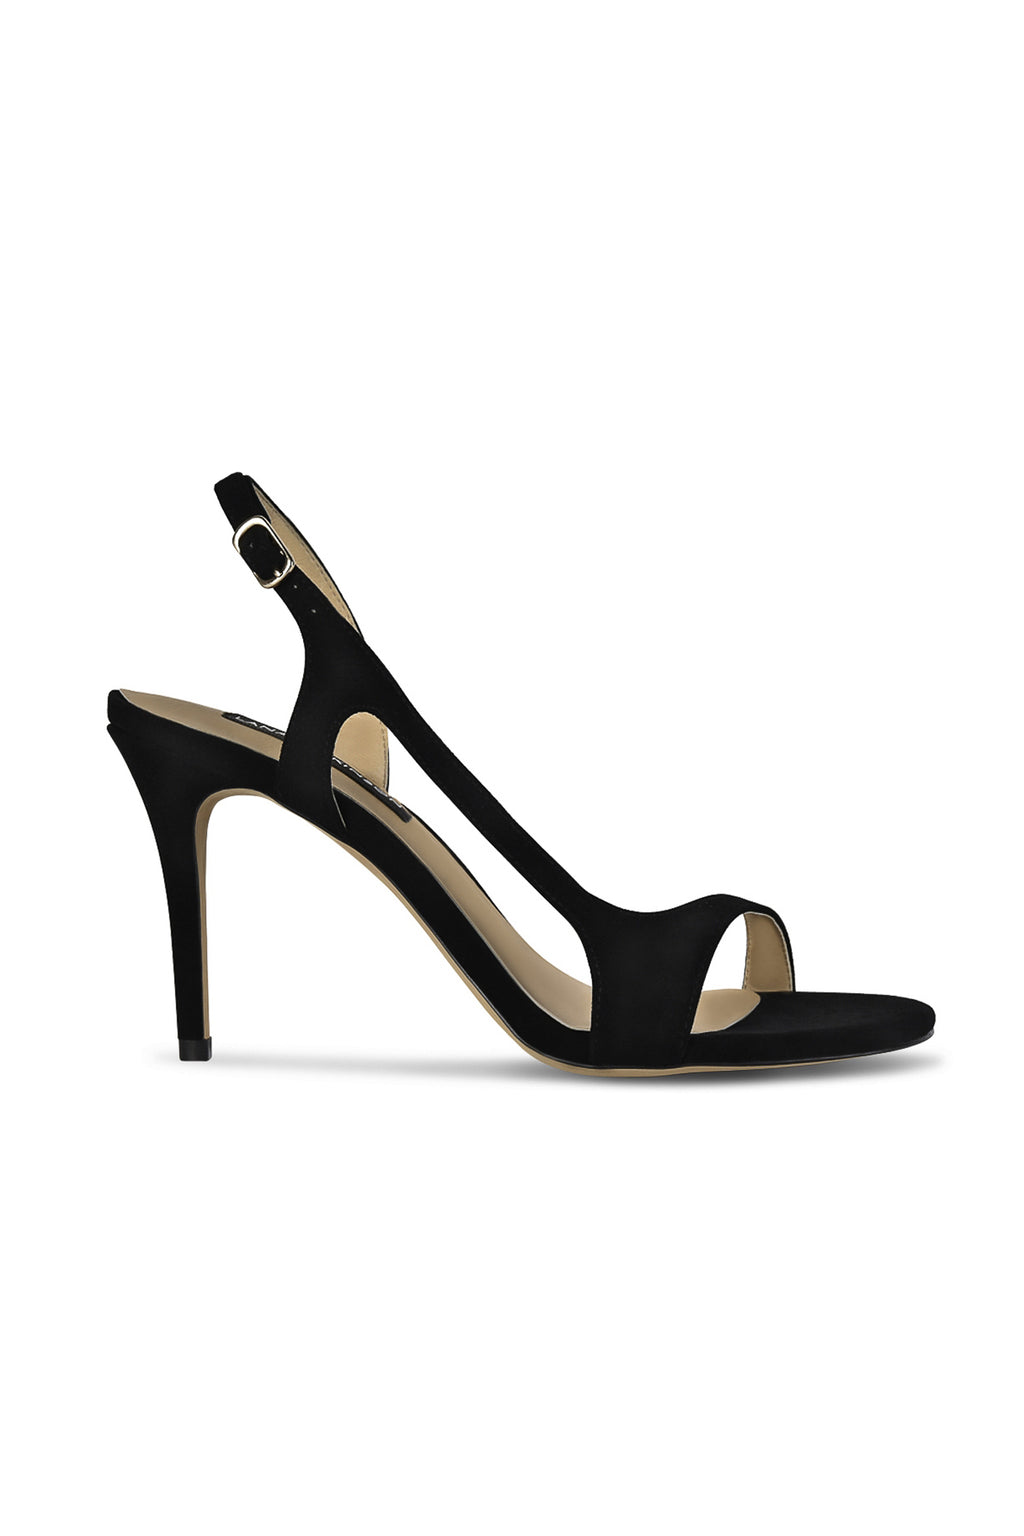 Lana Wilkinson Gemma in Black Suede